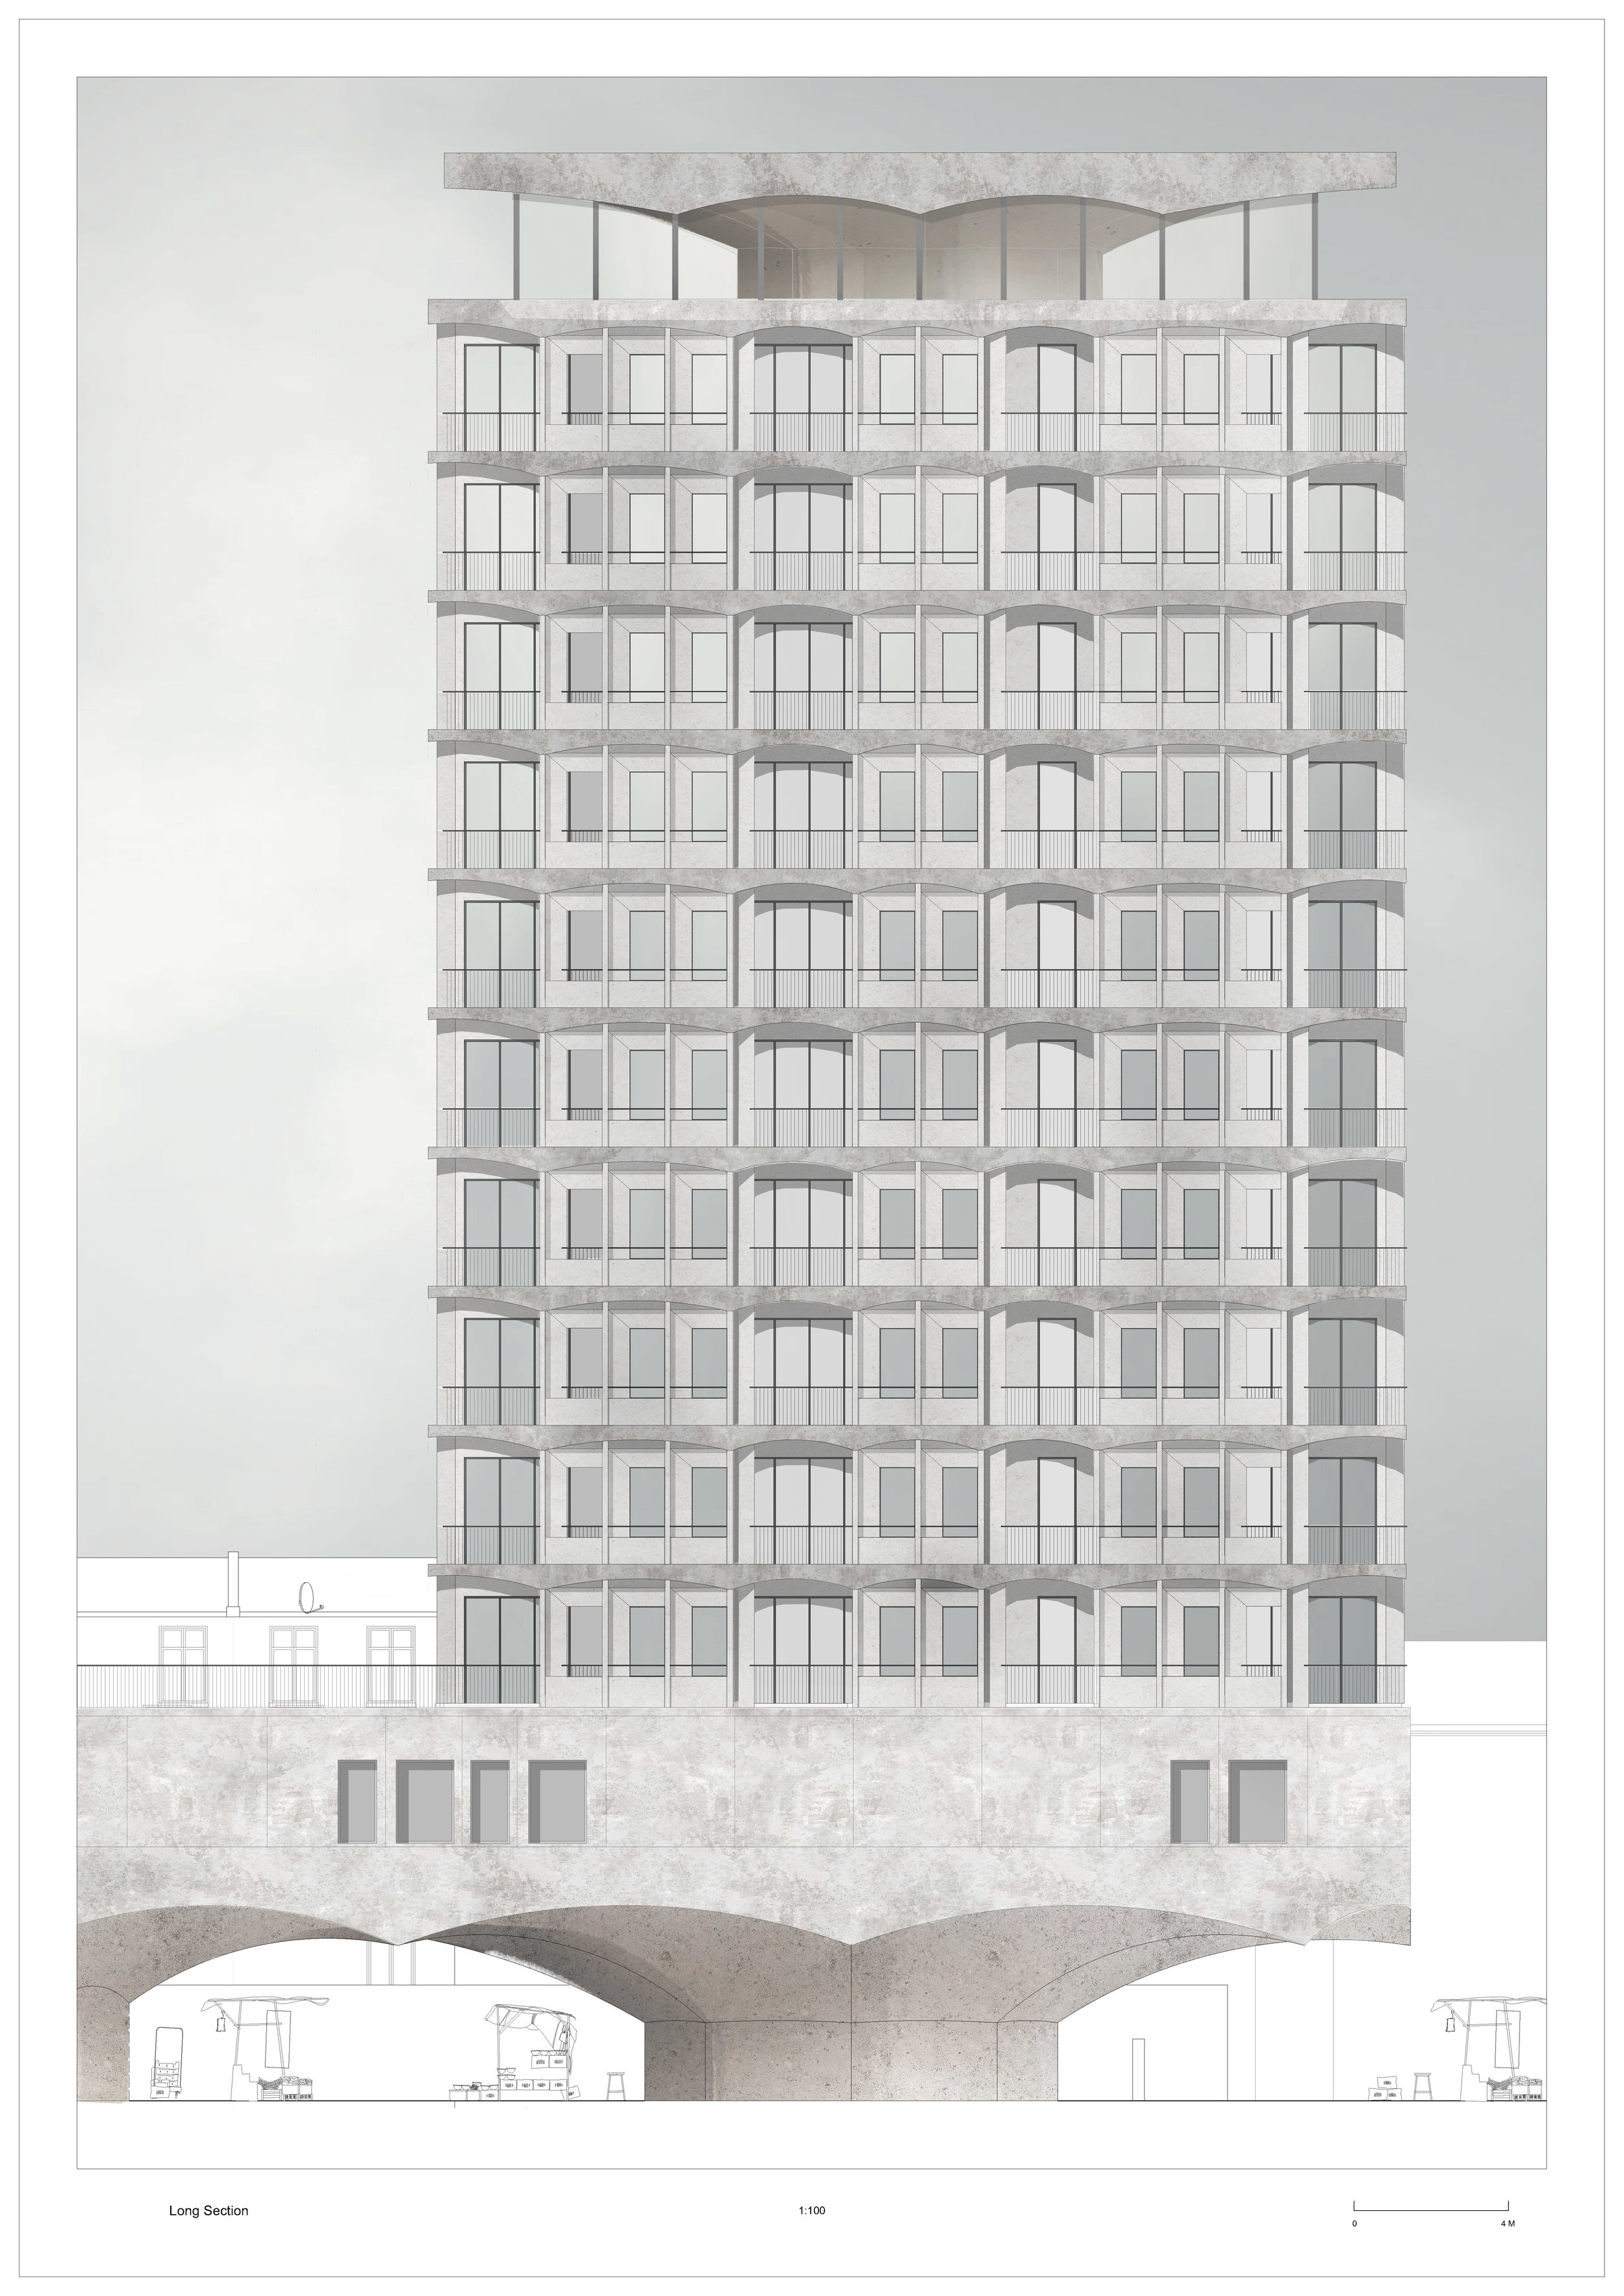 Rendered Elevation, 1 to 100 scale